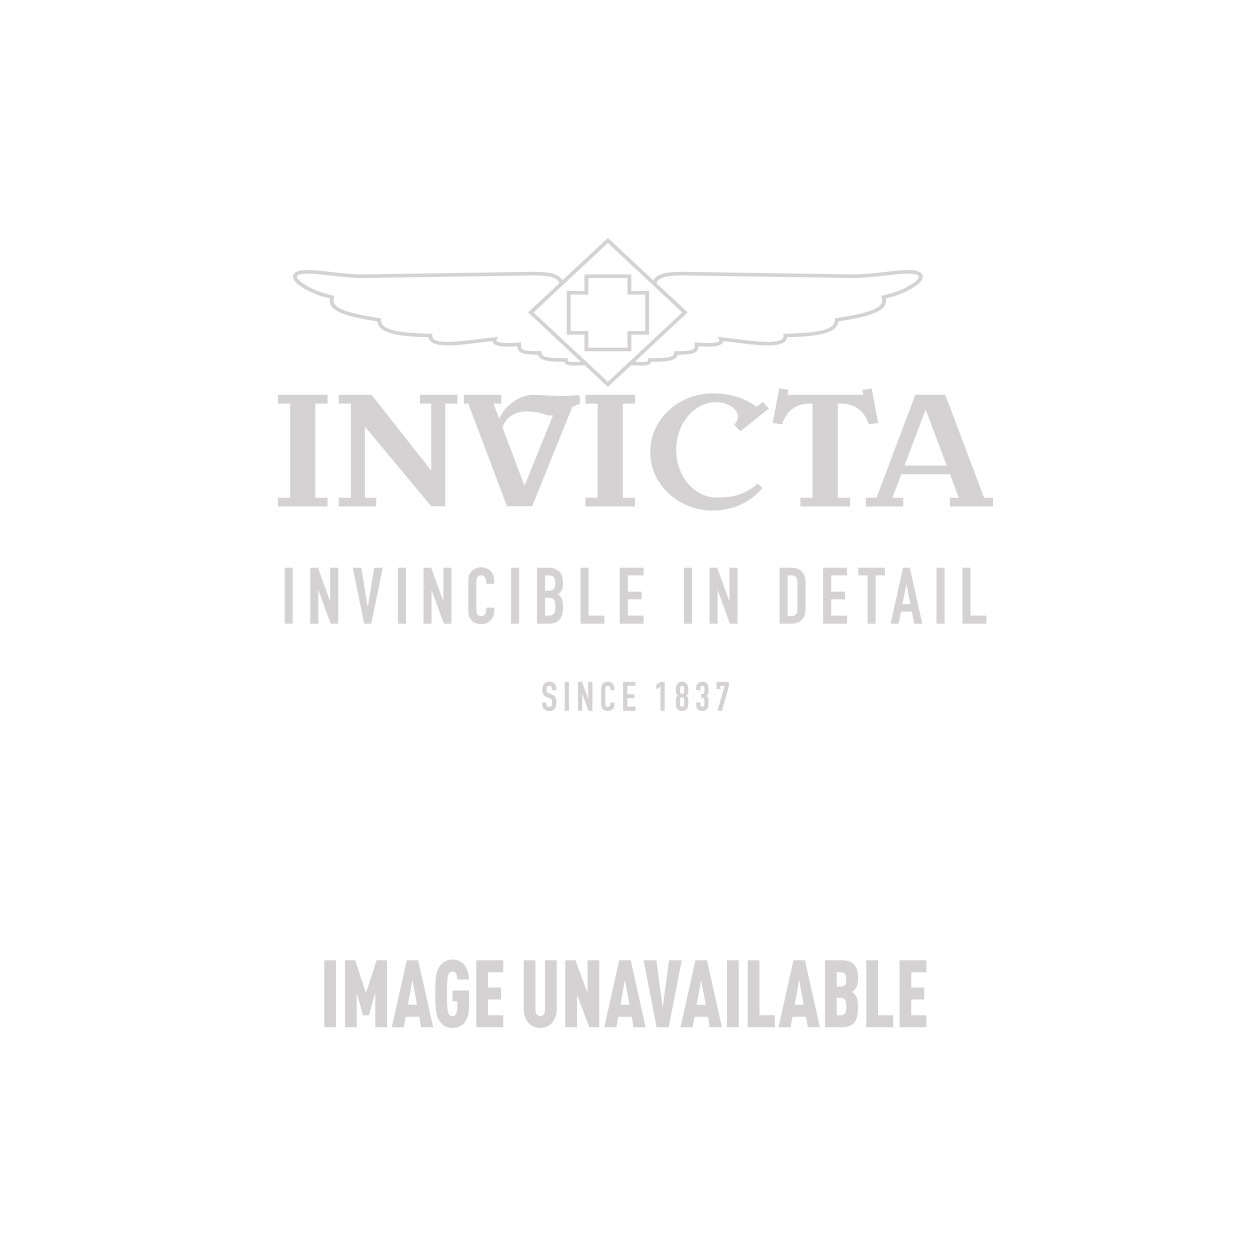 Invicta I-Force Swiss Movement Quartz Watch - Stainless Steel case with Black tone Leather band - Model 0351